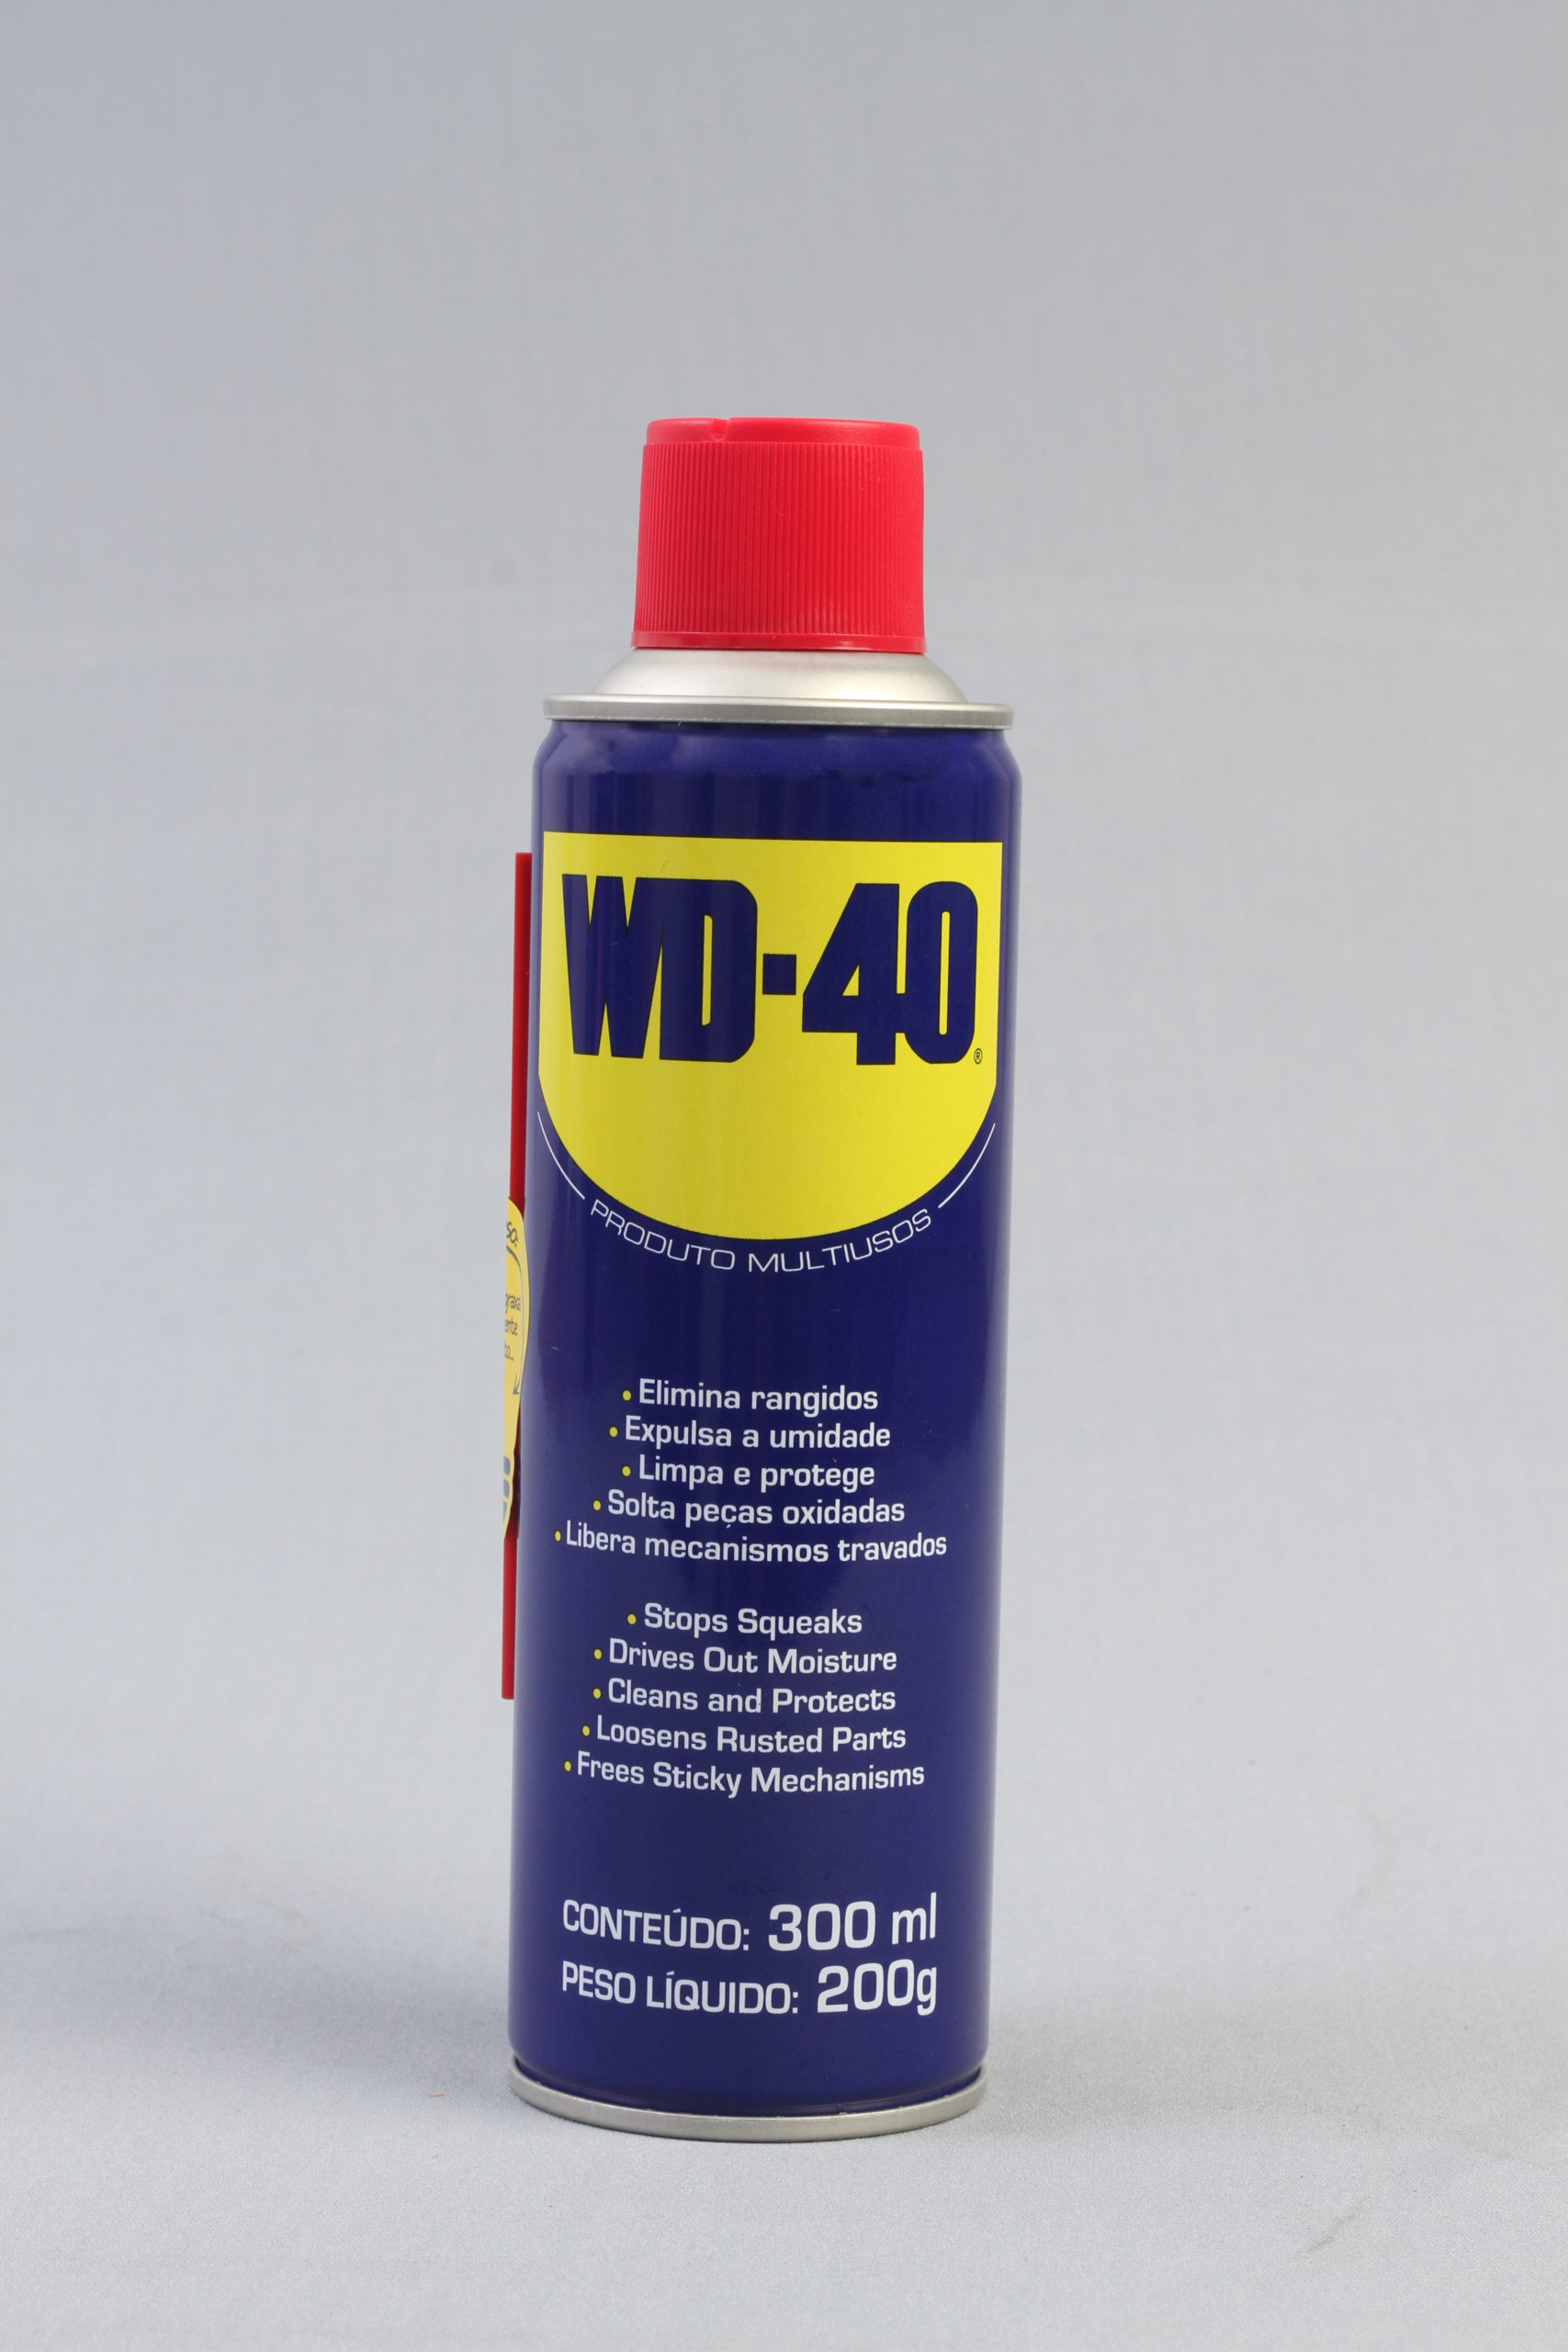 x5-product-https://x5company.com/wp-content/uploads/2020/06/WD-40-scaled.jpg